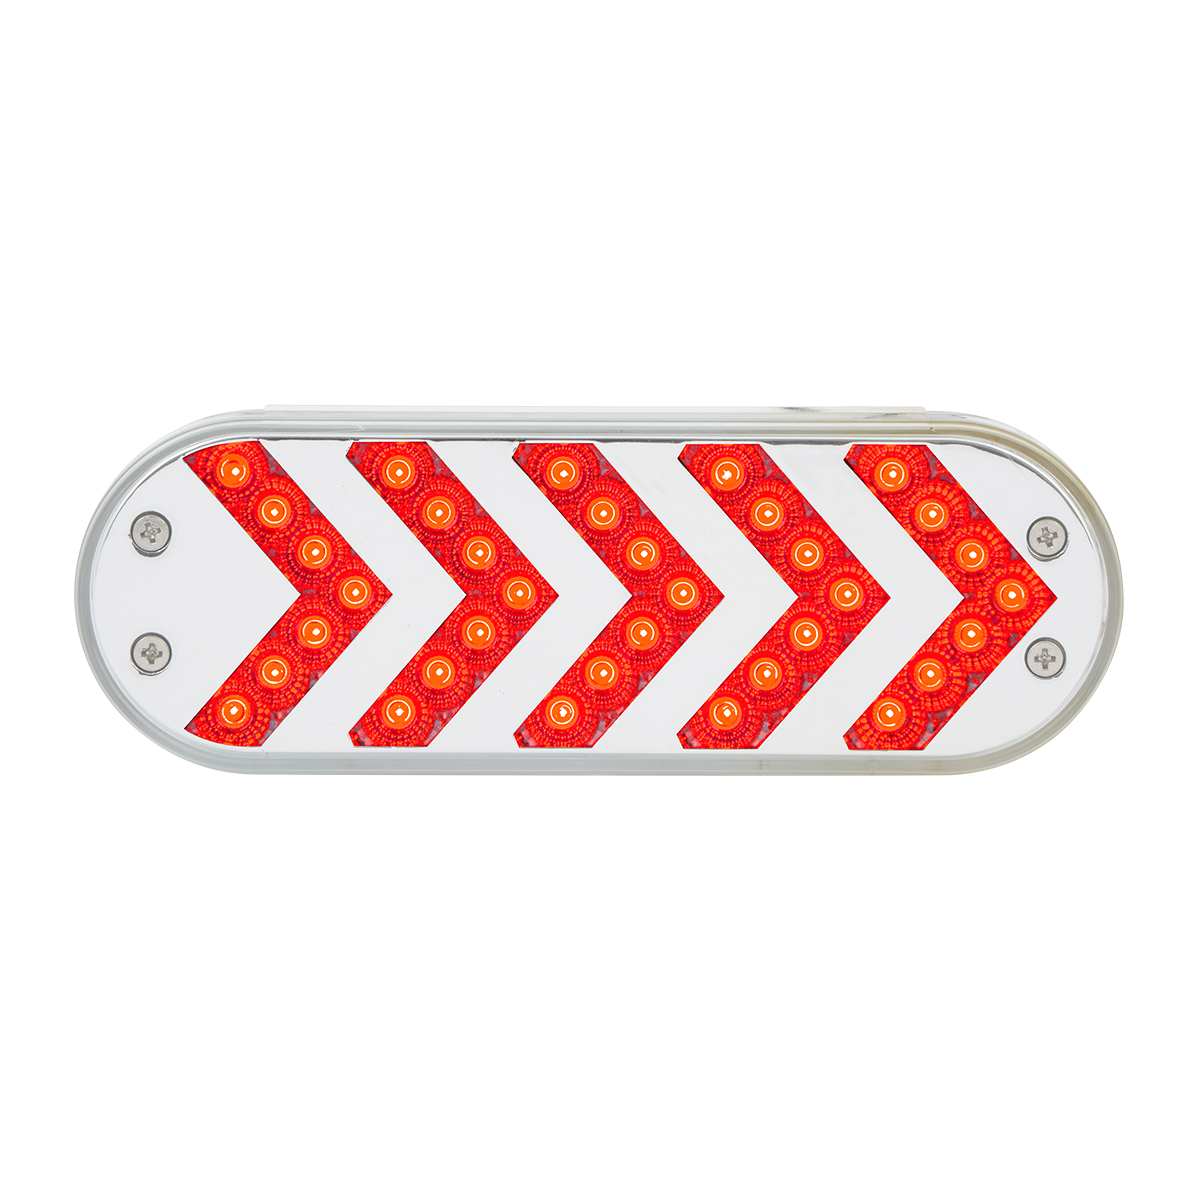 77127 Oval Sequential Arrow Spyder LED Light in Red/Clear